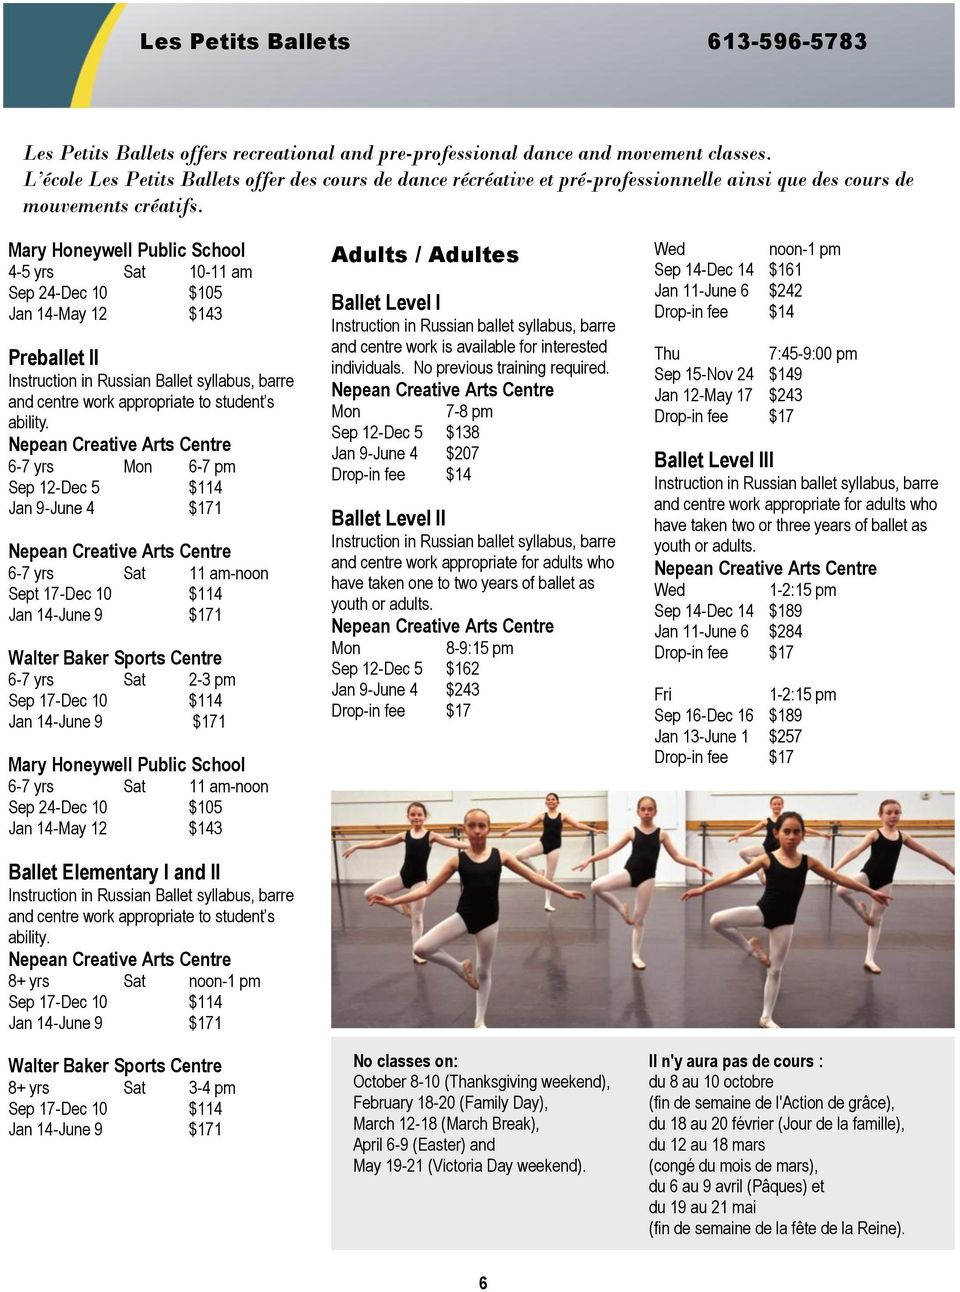 Mary Honeywell Public School 4-5 yrs Sat 10-11 am Sep 24-Dec 10 $105 Jan 14-May 12 $143 Preballet II Instruction in Russian Ballet syllabus, barre and centre work appropriate to student s ability.